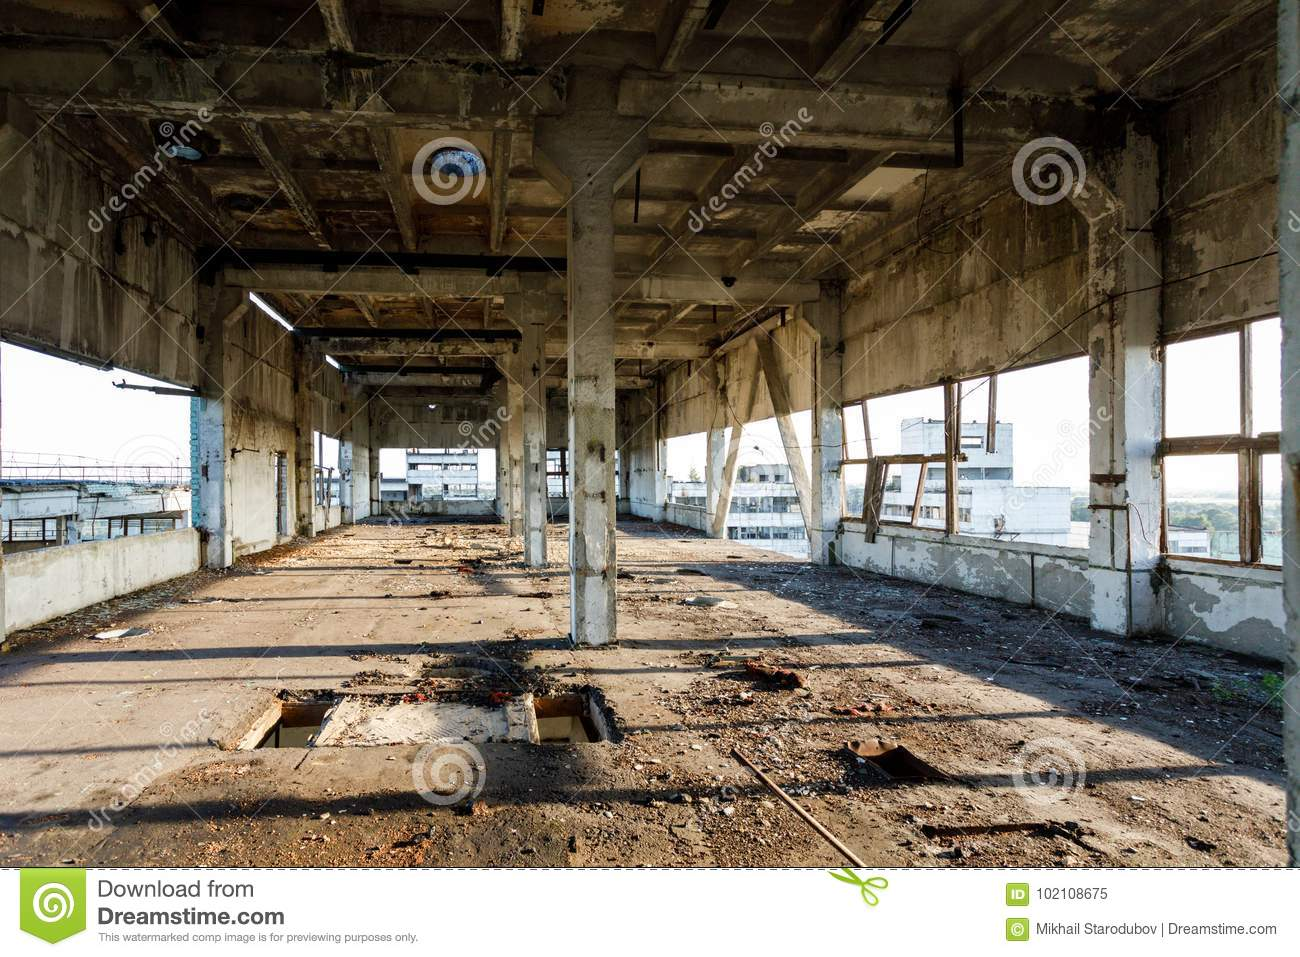 The Ruins Of An Old Abandoned Factory Stock Image - Image of ... for Abandoned Factory Russia  181obs